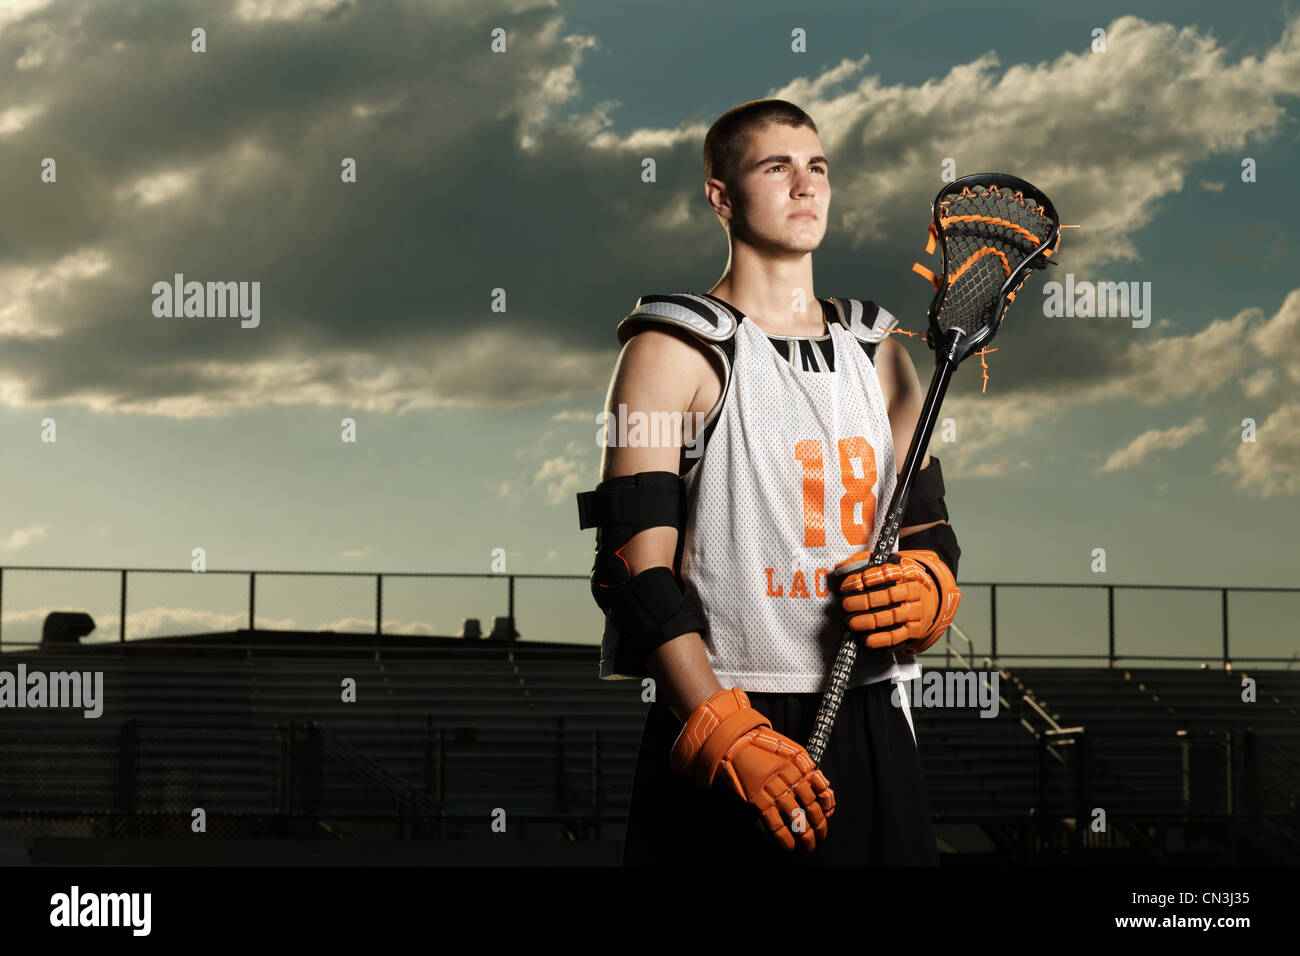 Young sportsman holding lacrosse stick in stadium - Stock Image